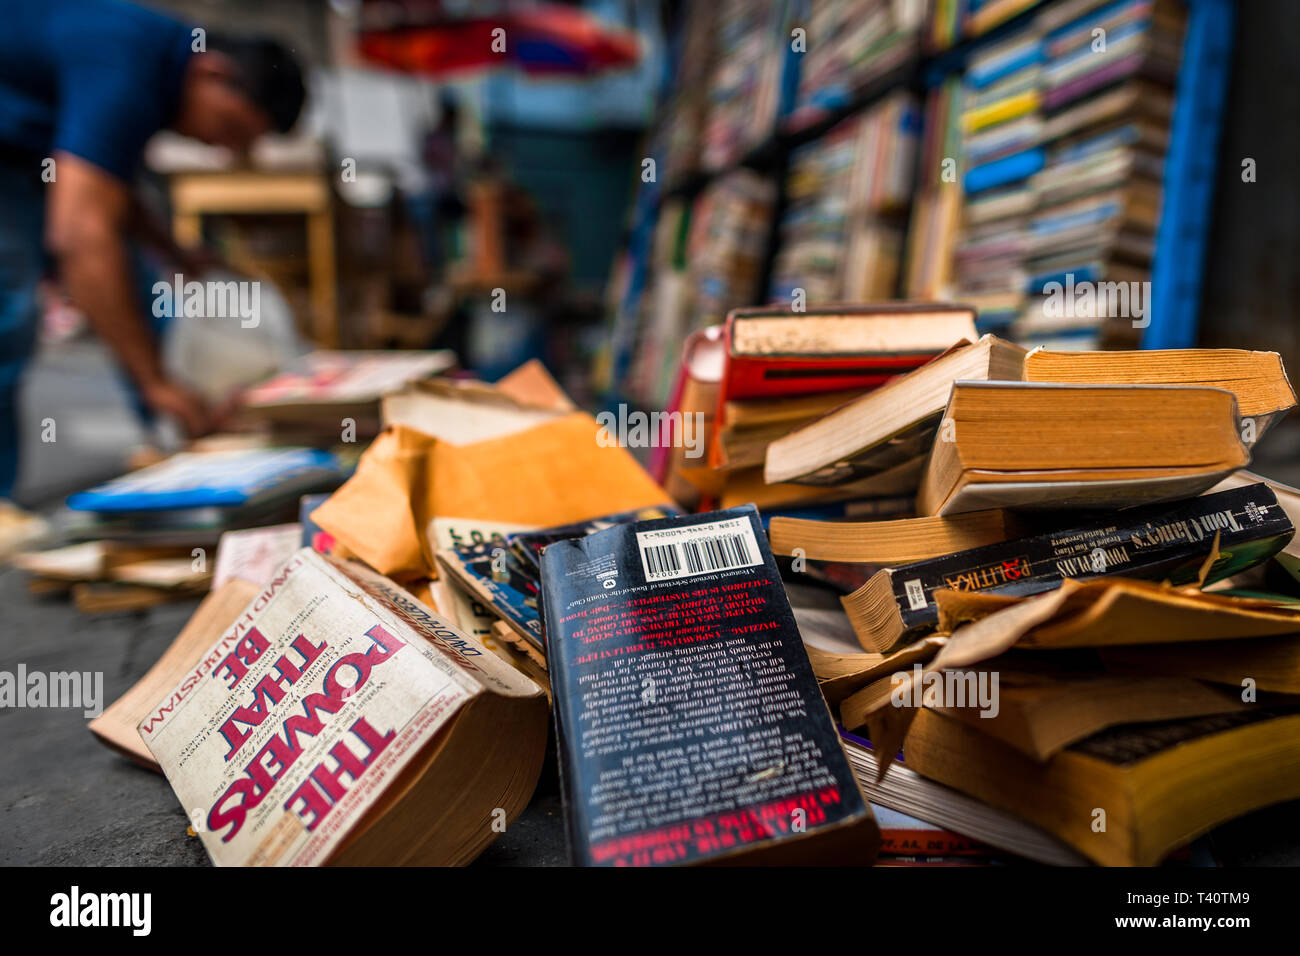 Used books are seen lying disorganized on the street in a secondhand bookshop in San Salvador, El Salvador. - Stock Image